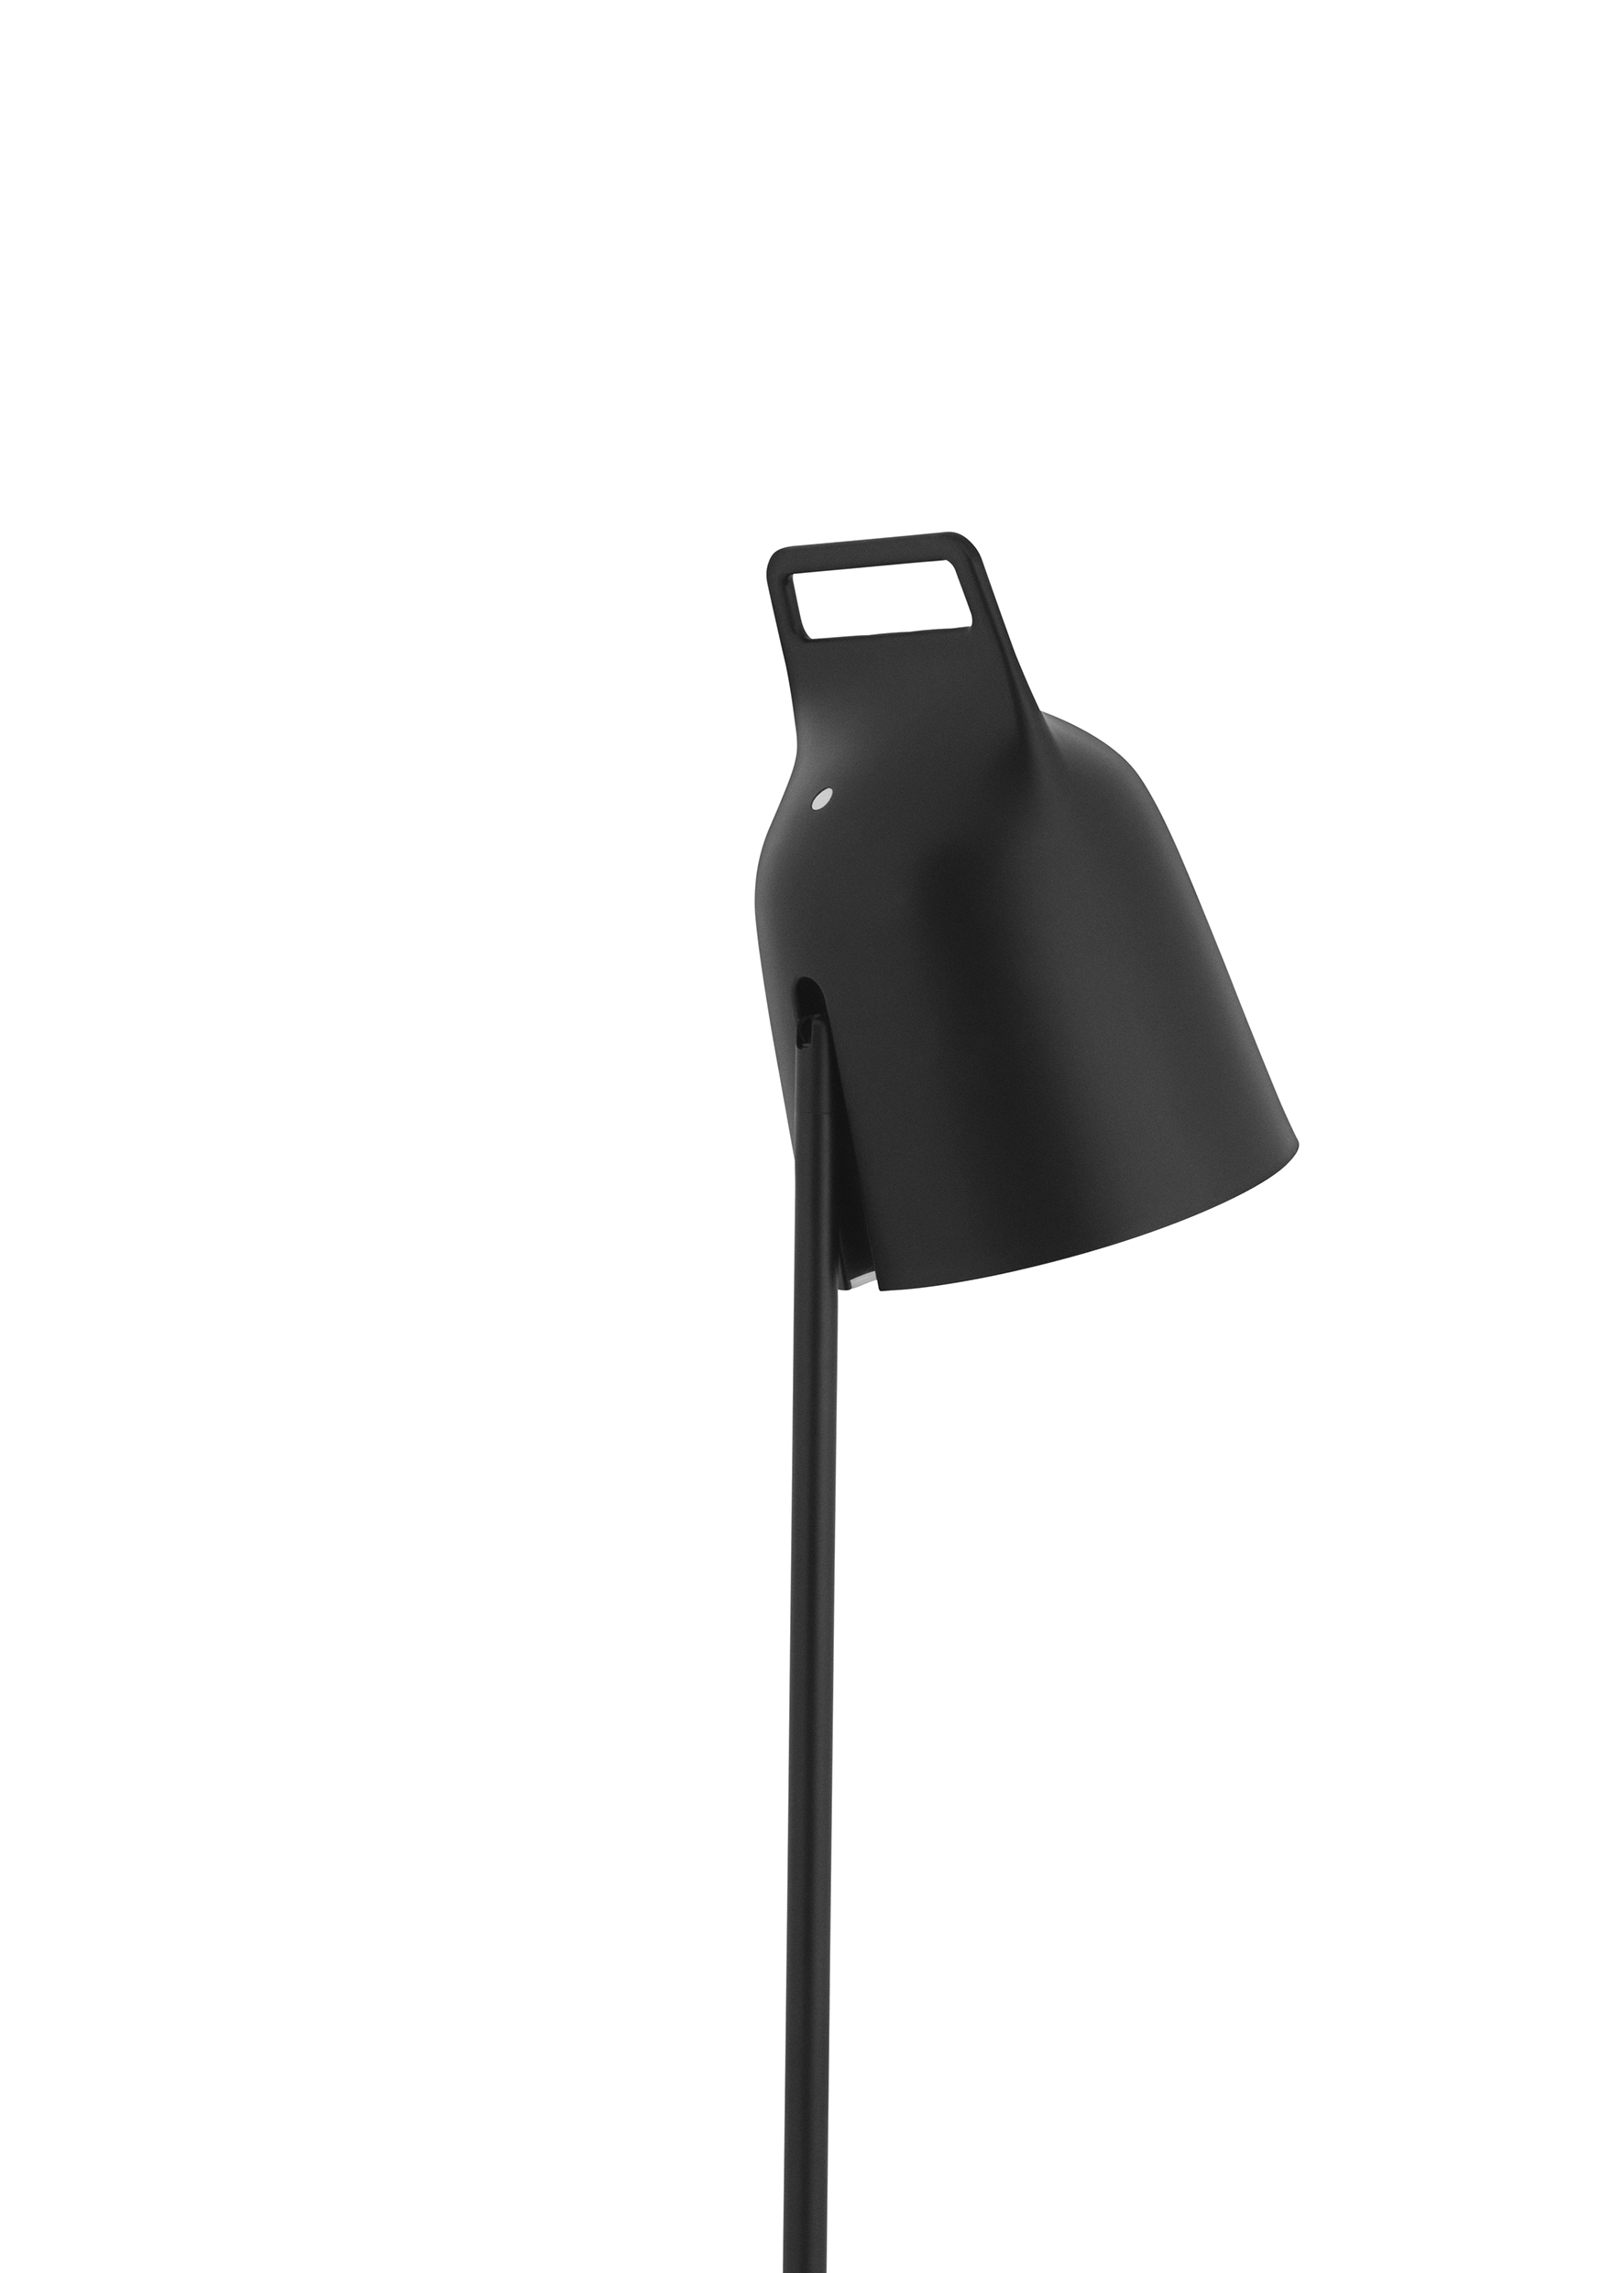 Detail of Stage floor lamp by Debiasi Sandri for Normann Copenhagen